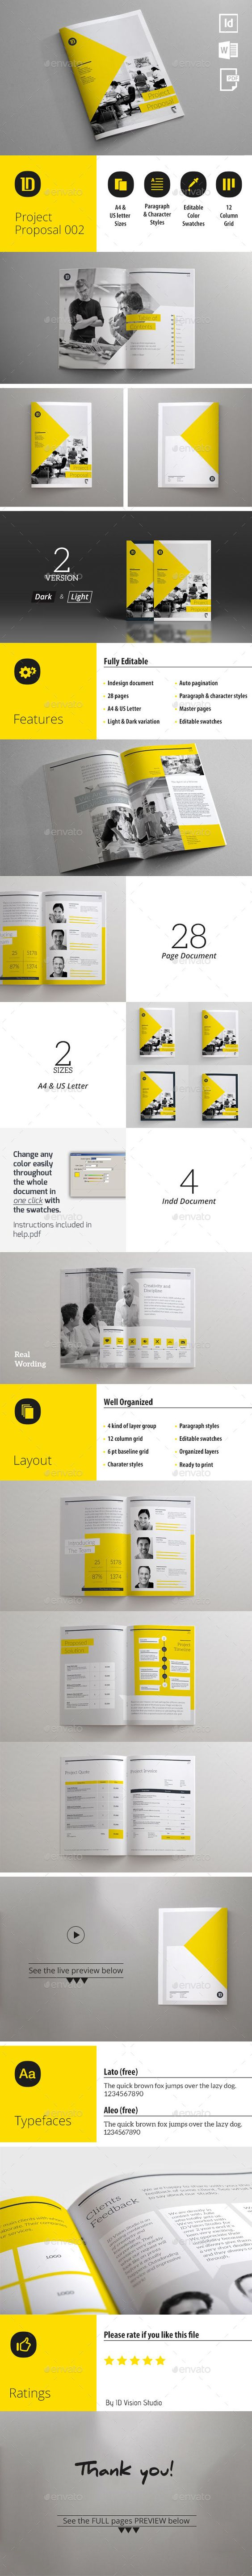 project proposal template 002  u2014 indesign template  u2022 only available here  u2026